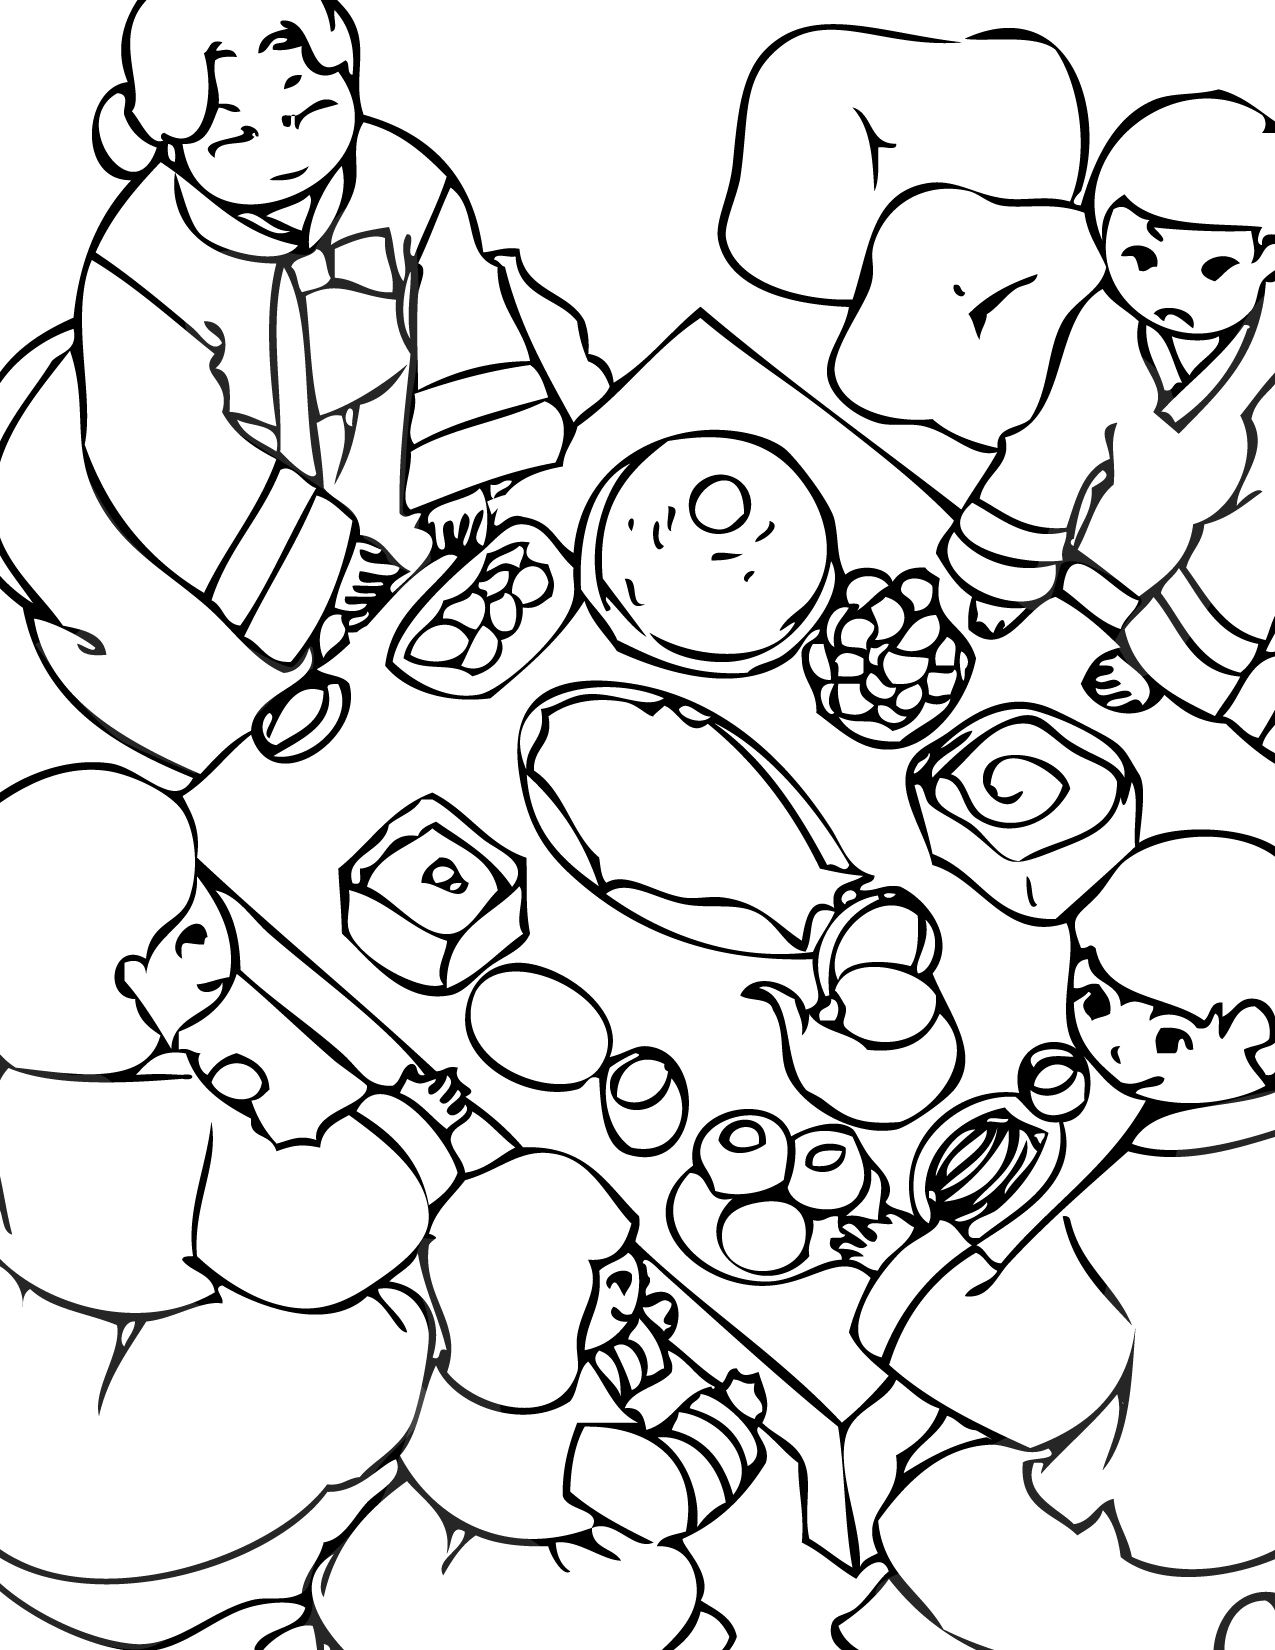 Korean Coloring Pages on Pinterest